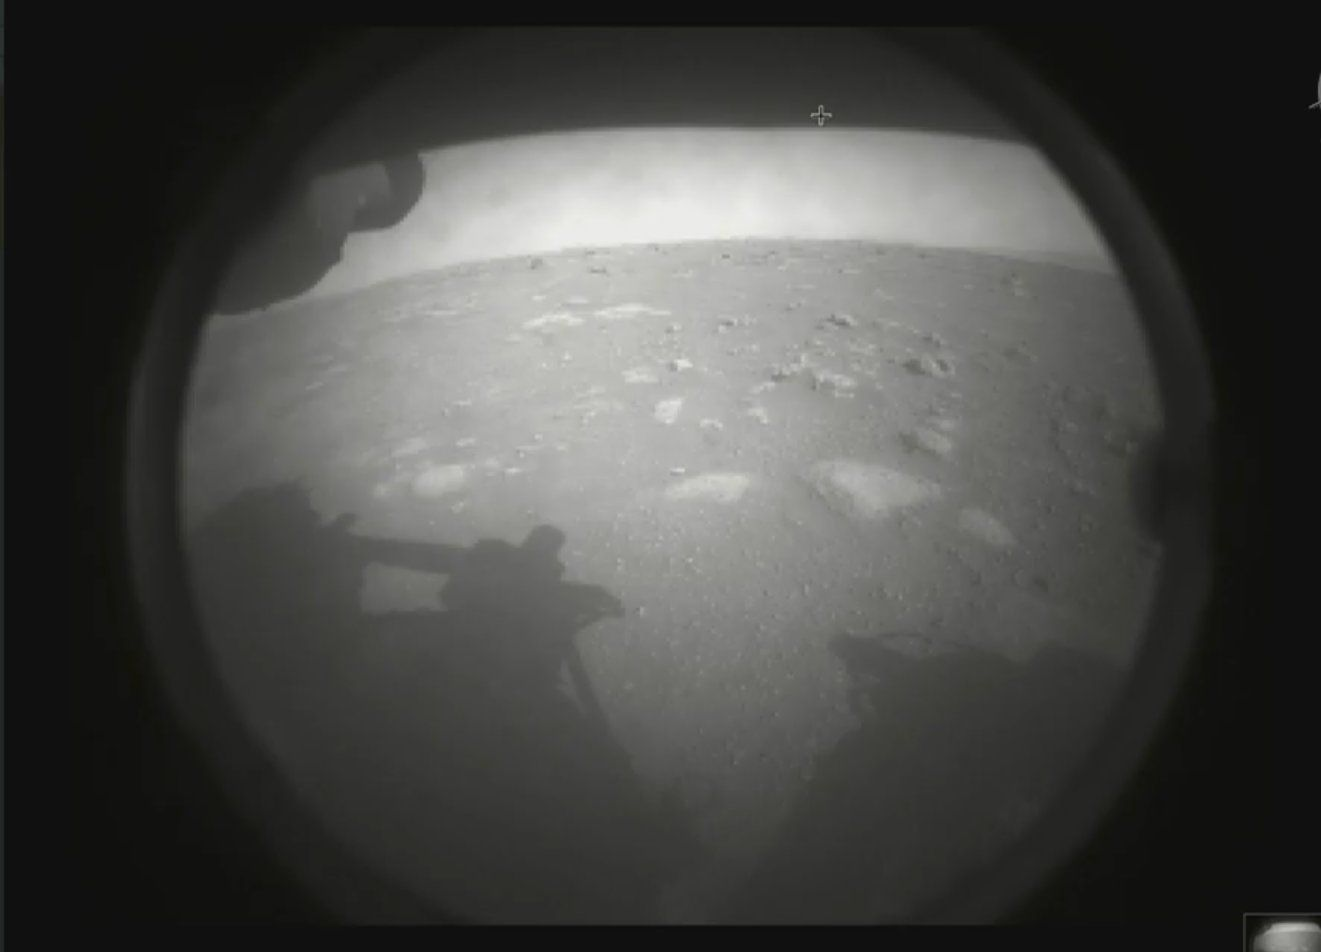 Success! NASA's Perseverance Rover Has Triumphantly Landed on Mars